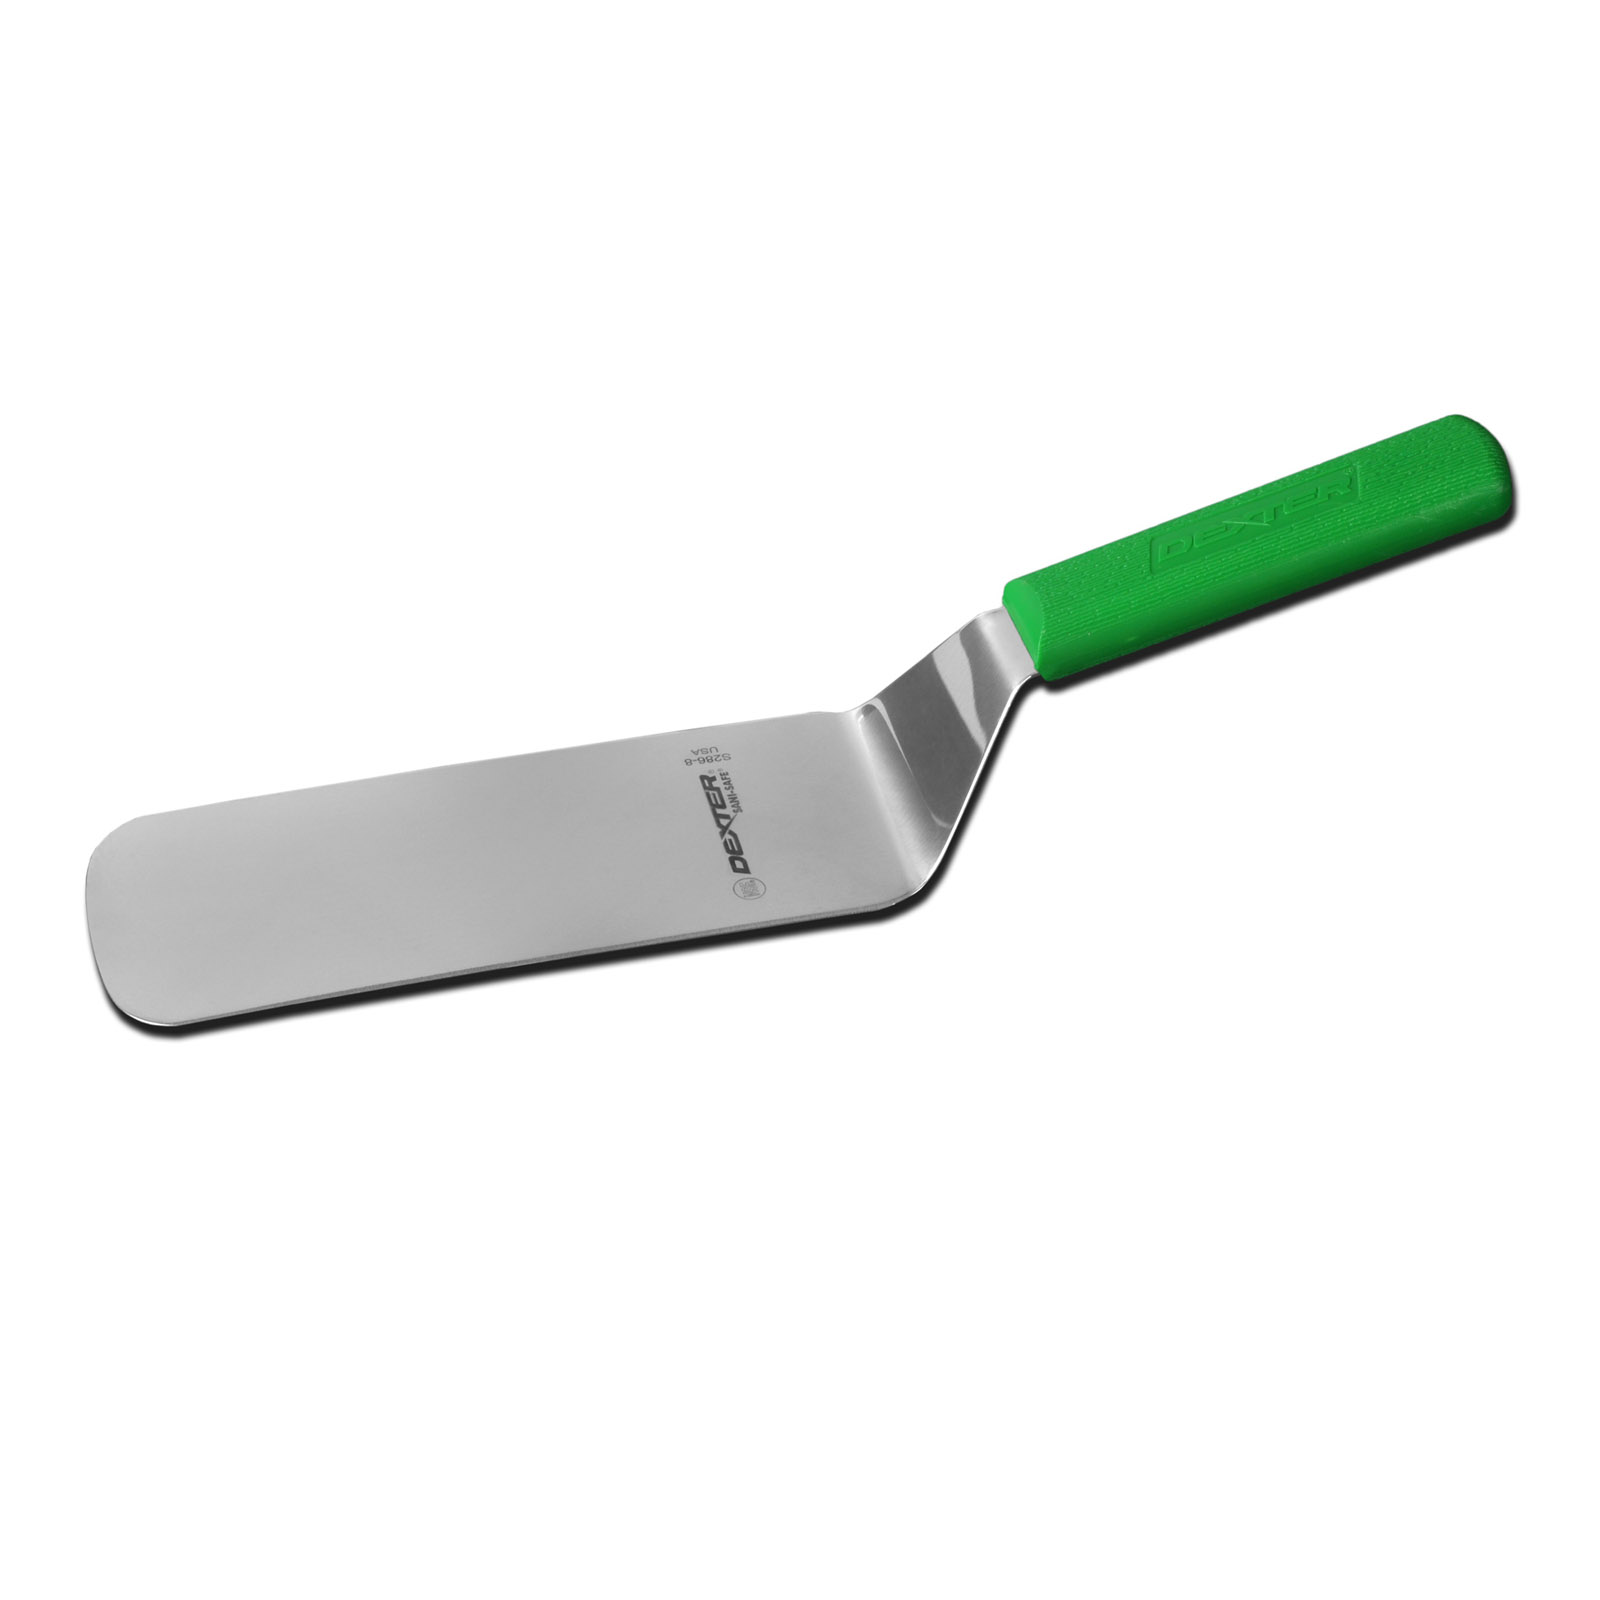 Dexter Russell S286-8G-PCP turner, solid, stainless steel